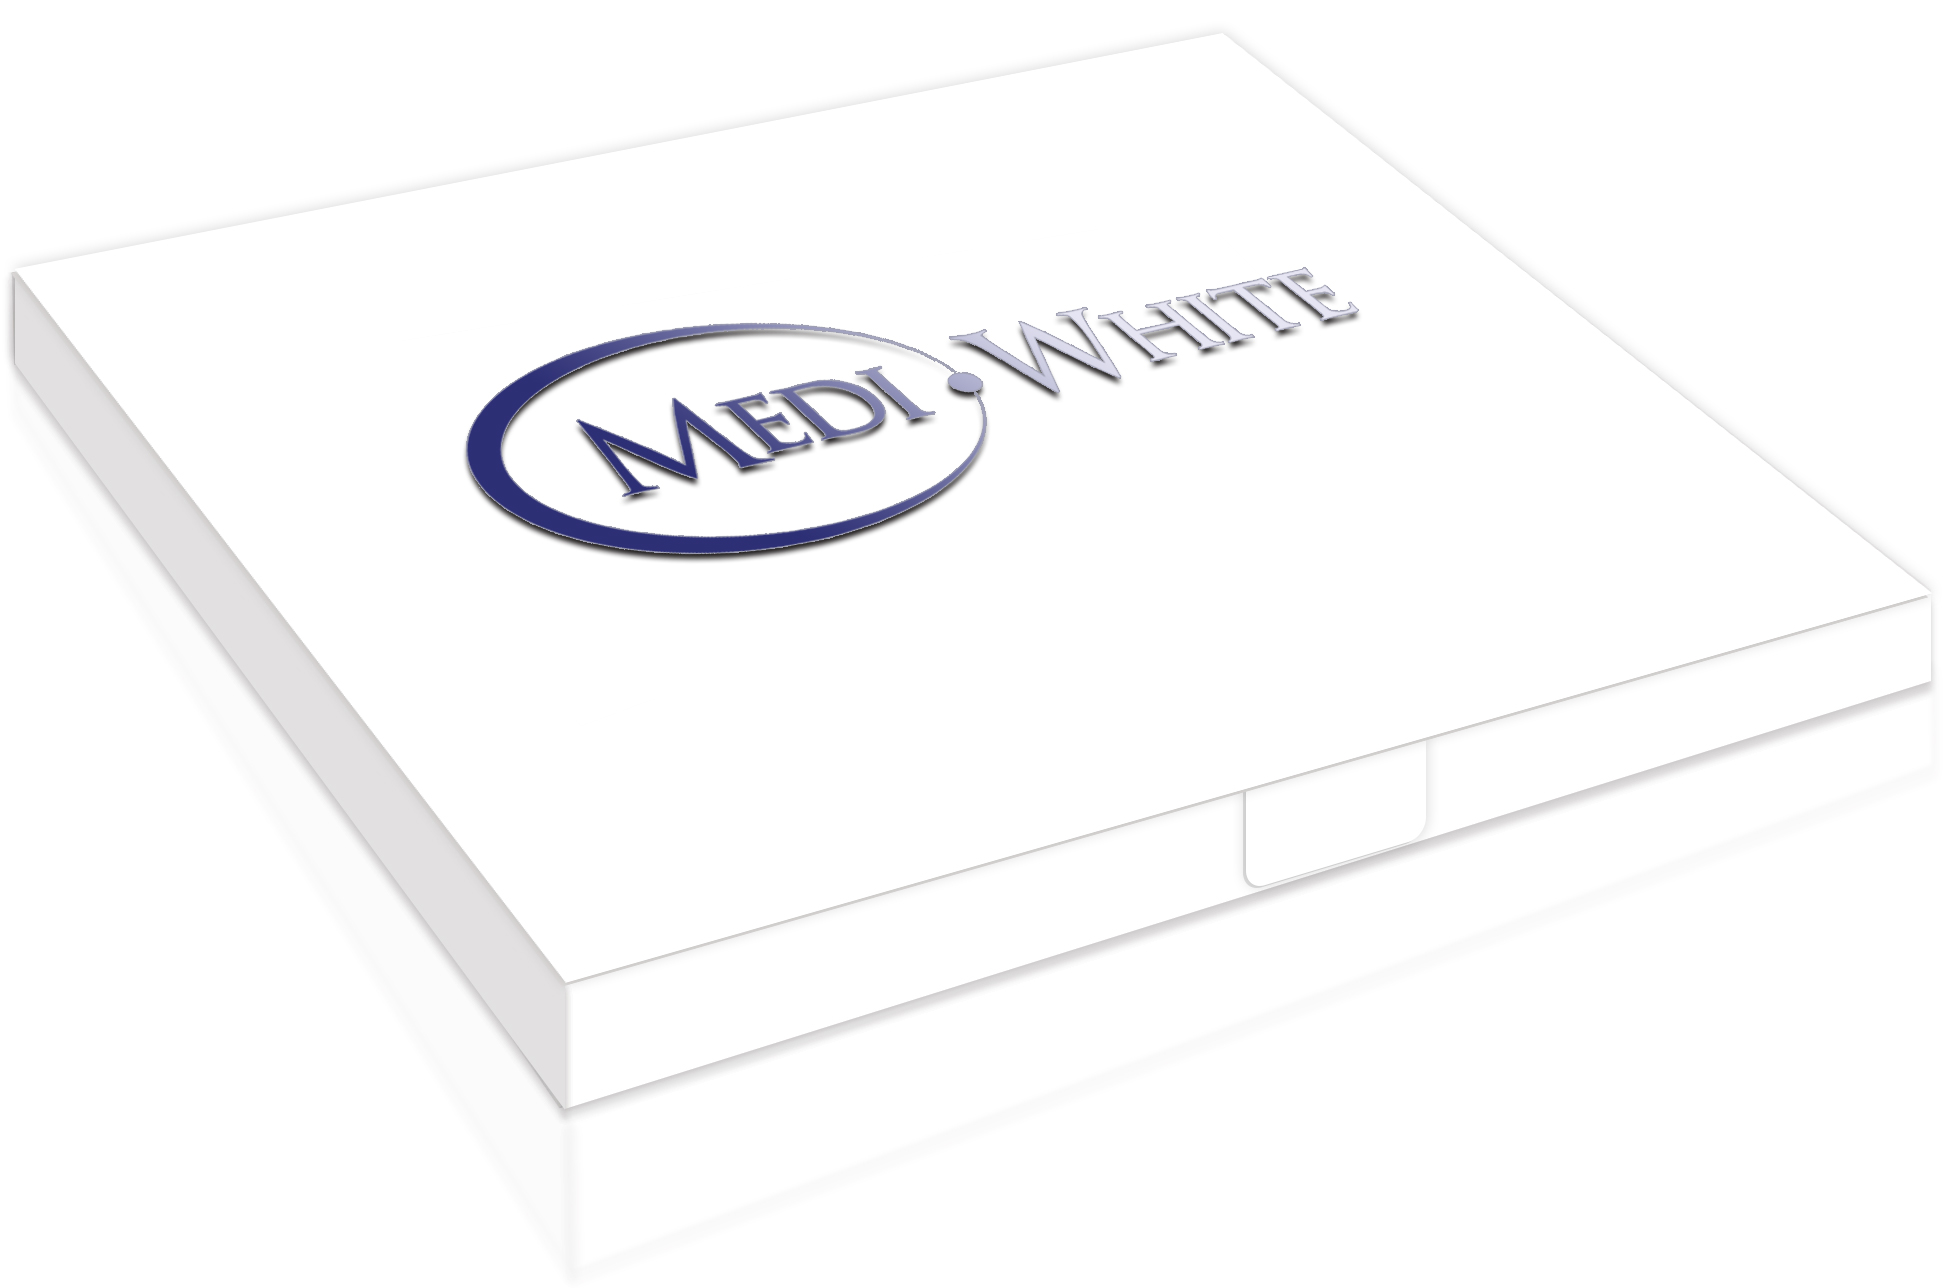 mediwhite-physician-authorized-kit-closed.jpg